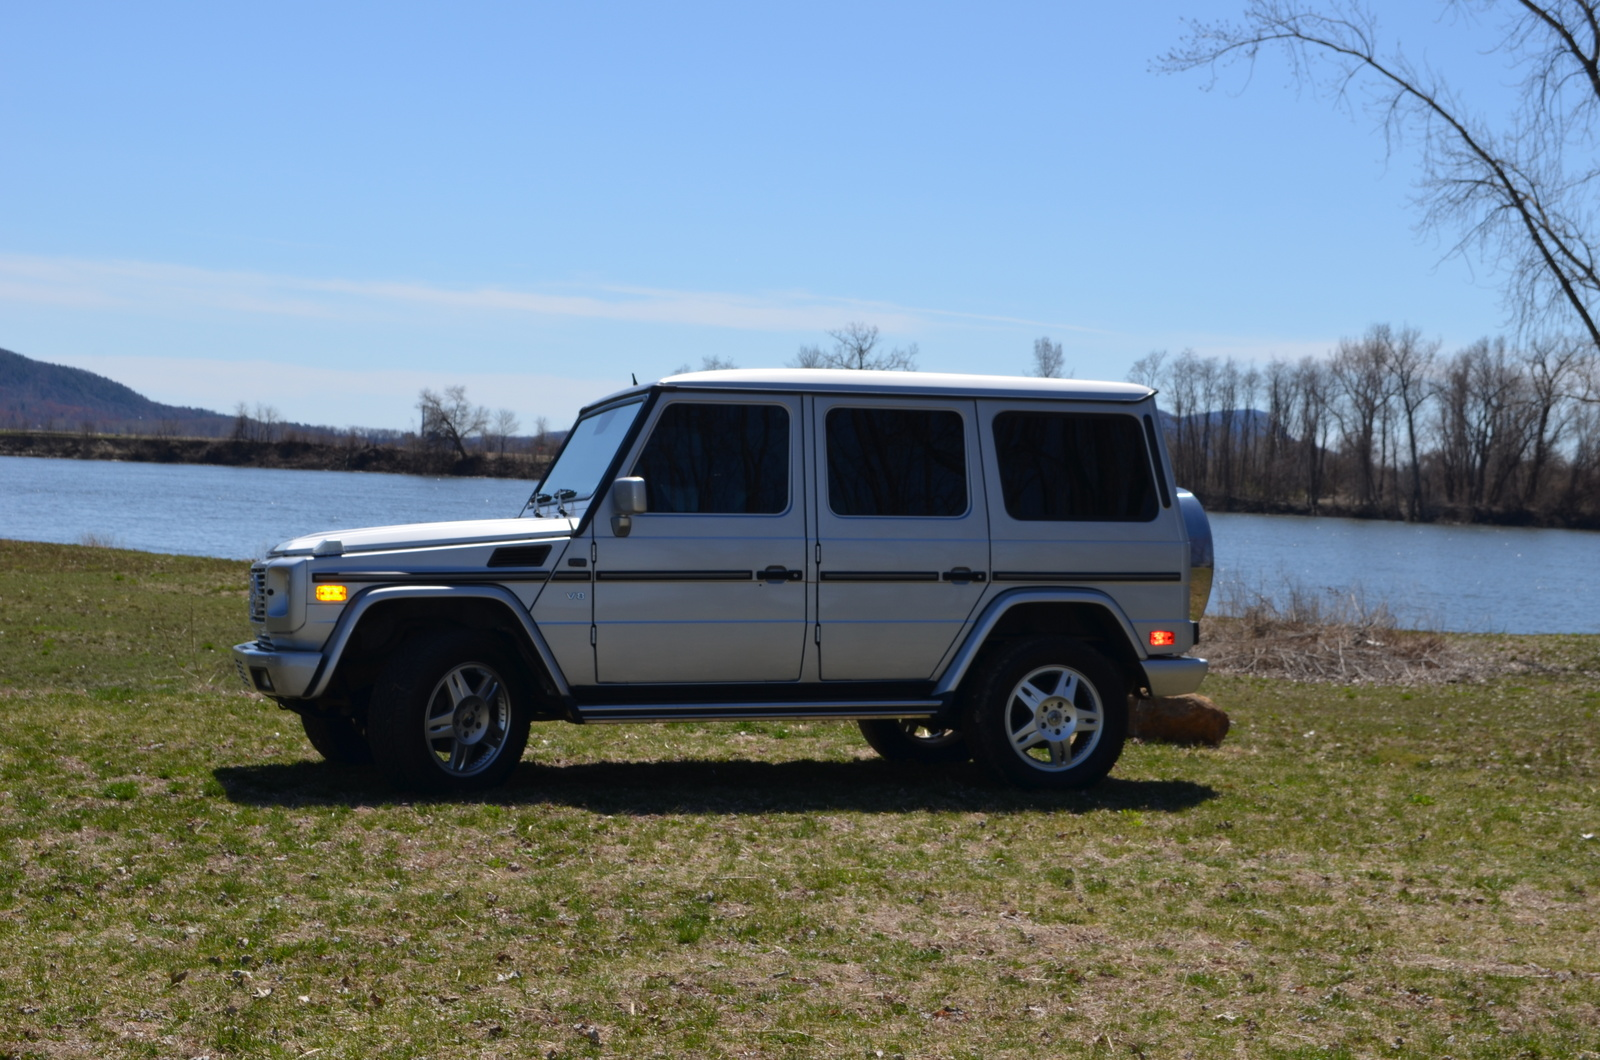 2002 mercedes benz g class pictures cargurus for 2002 mercedes benz suv